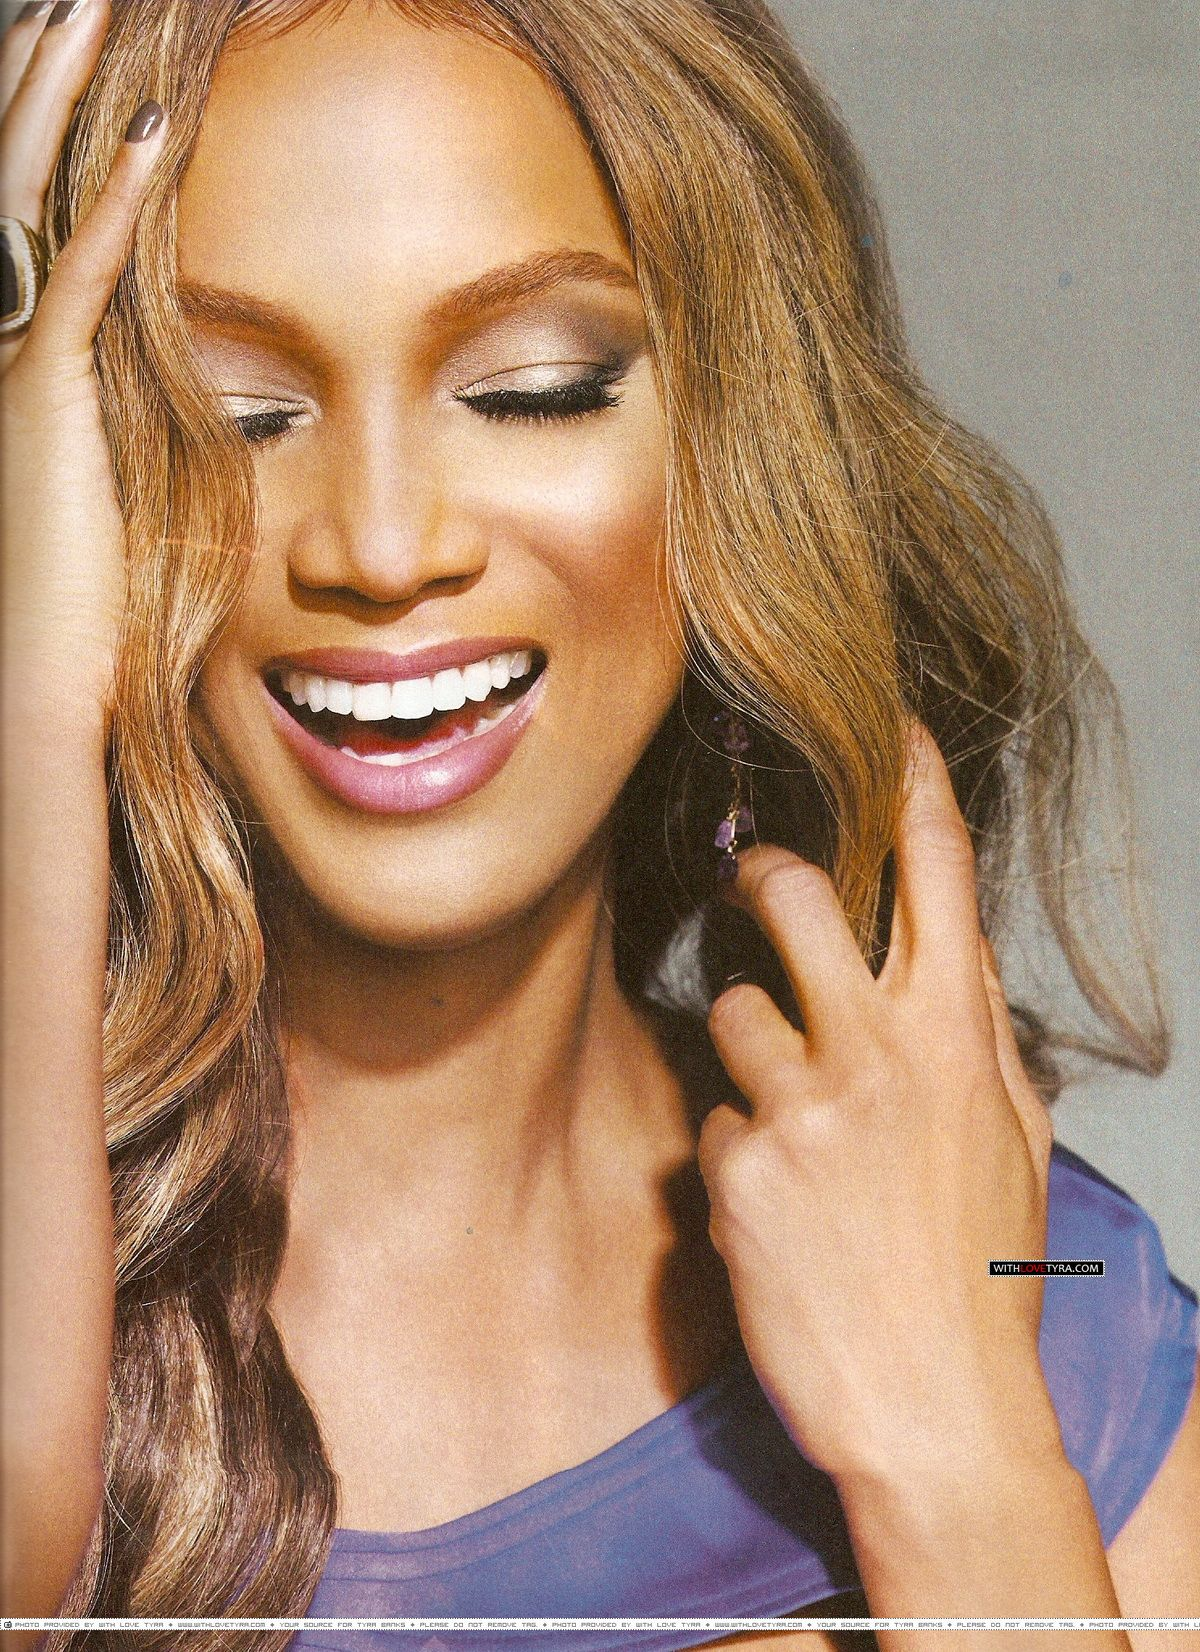 Pin on TyRa BaNkS ROCKS!